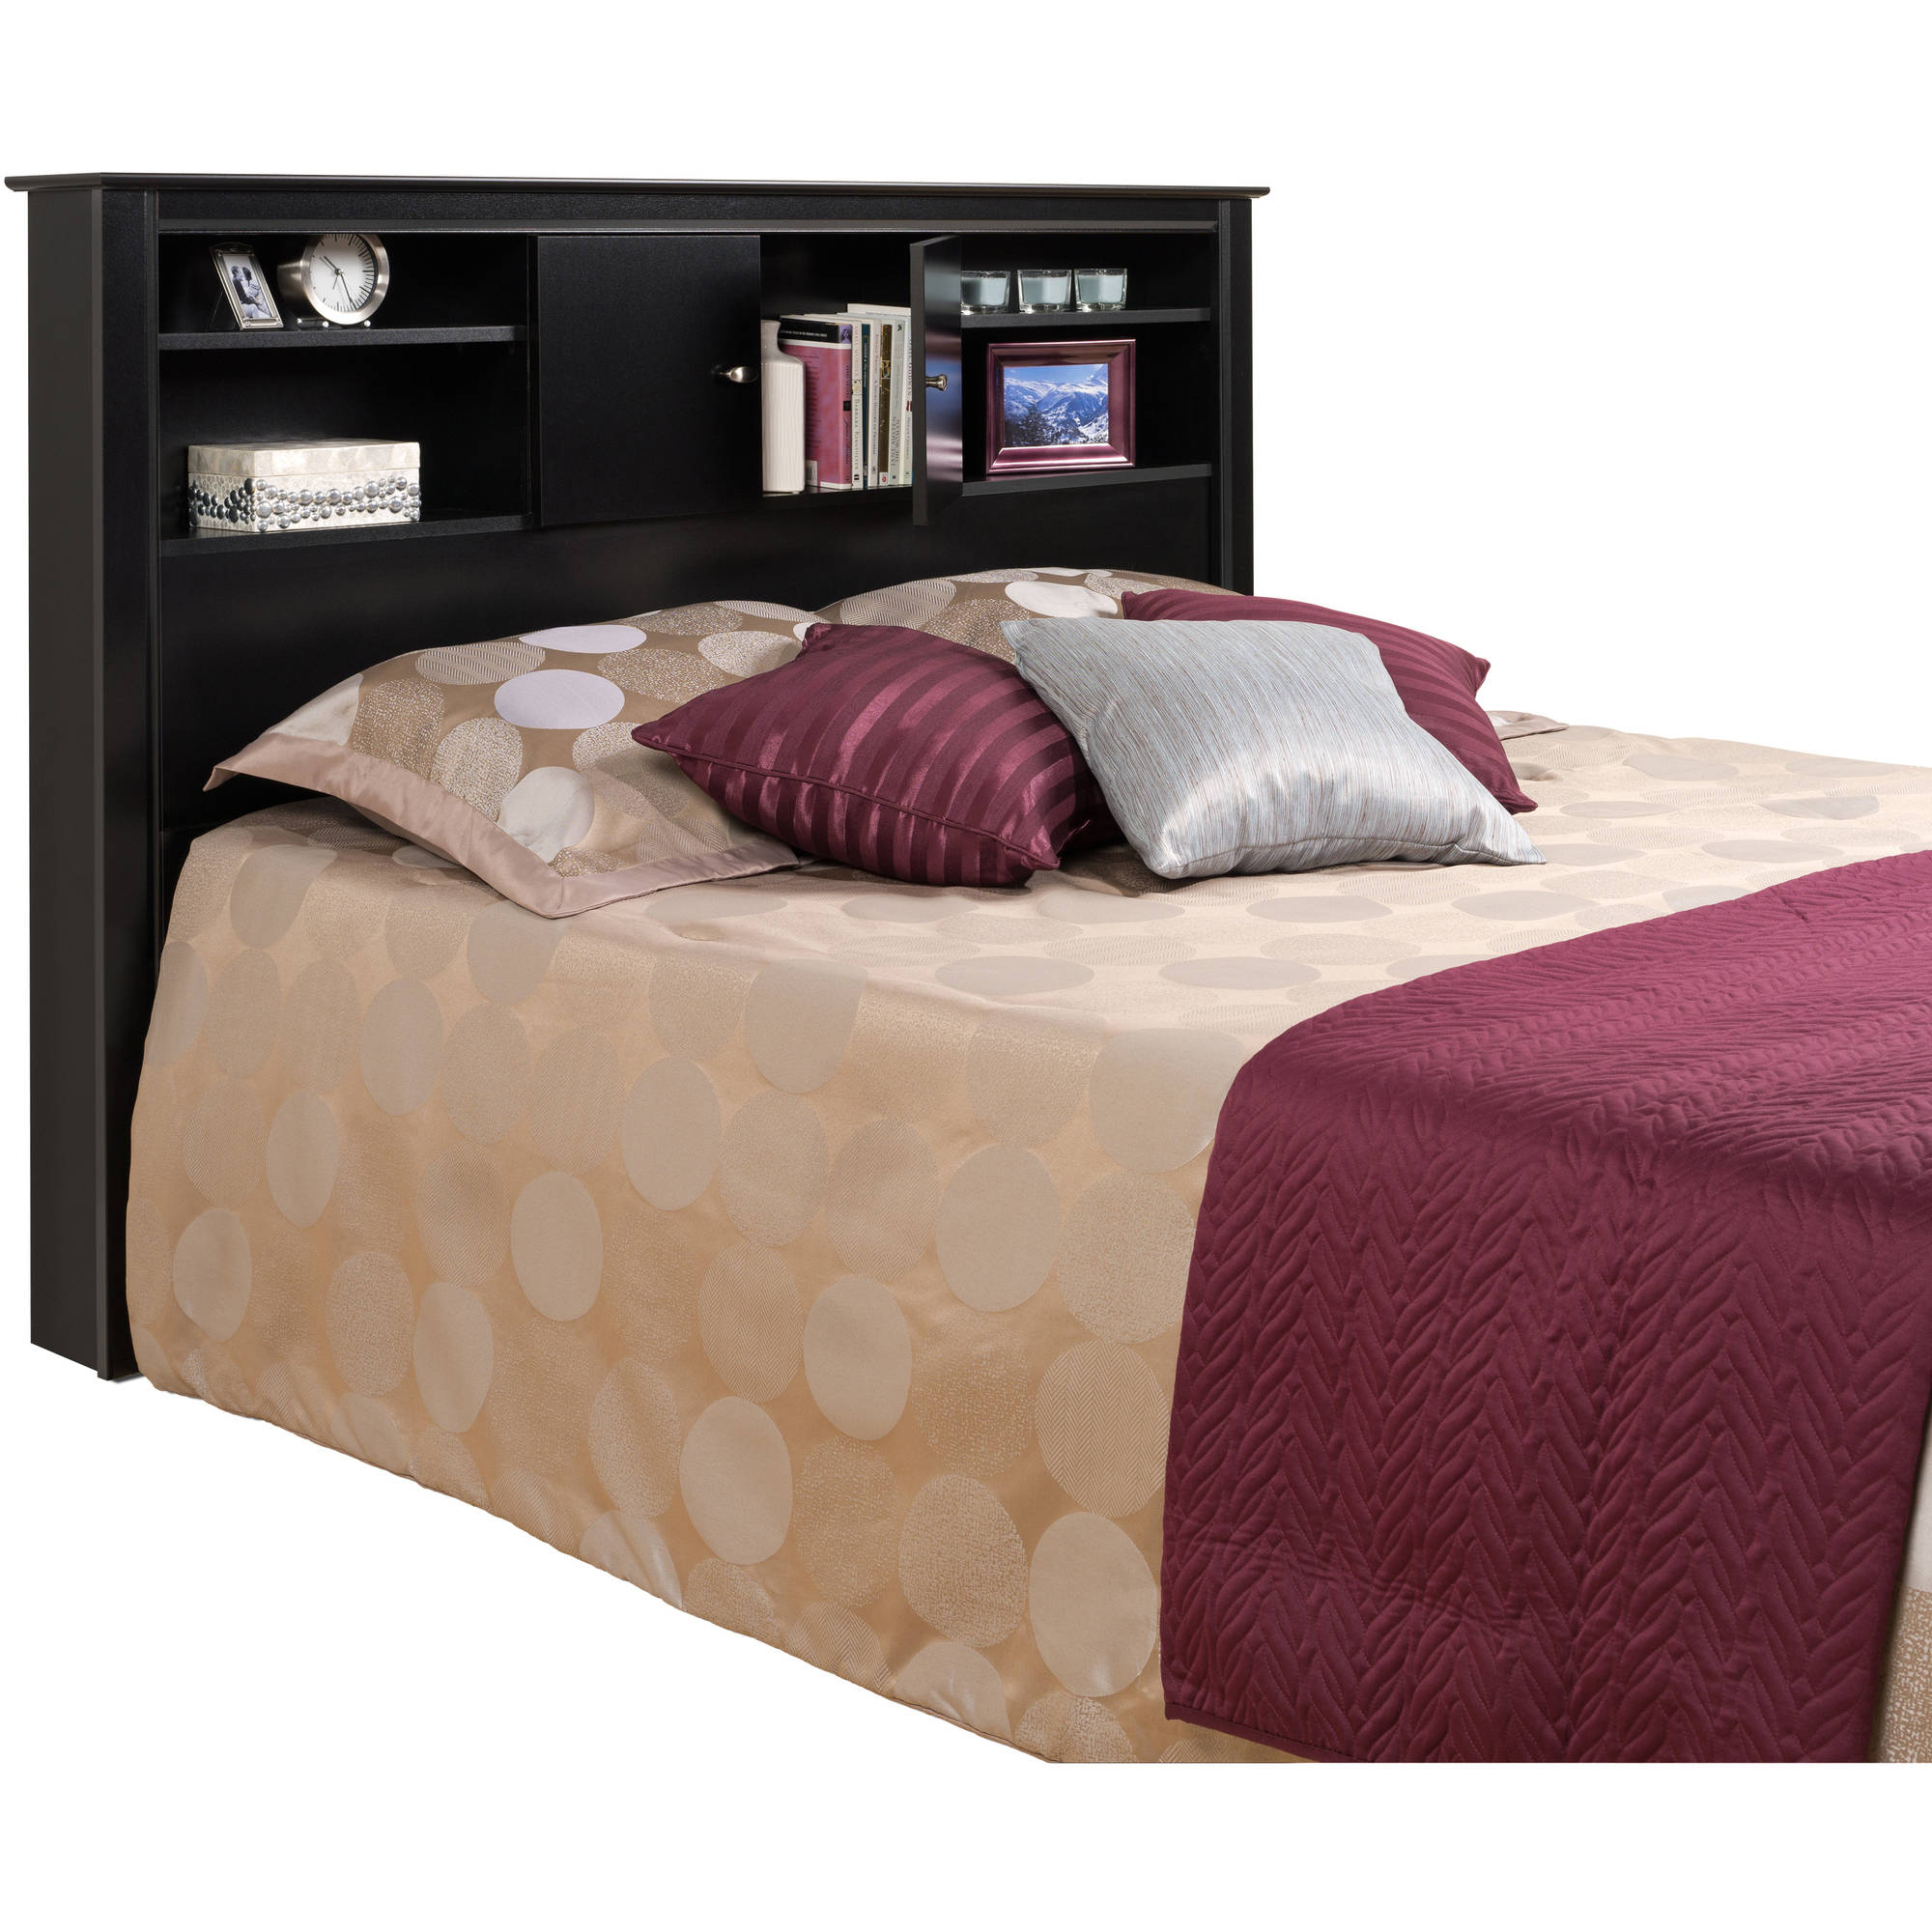 ip bookshelf walmart headboards com headboard queen full bookcase